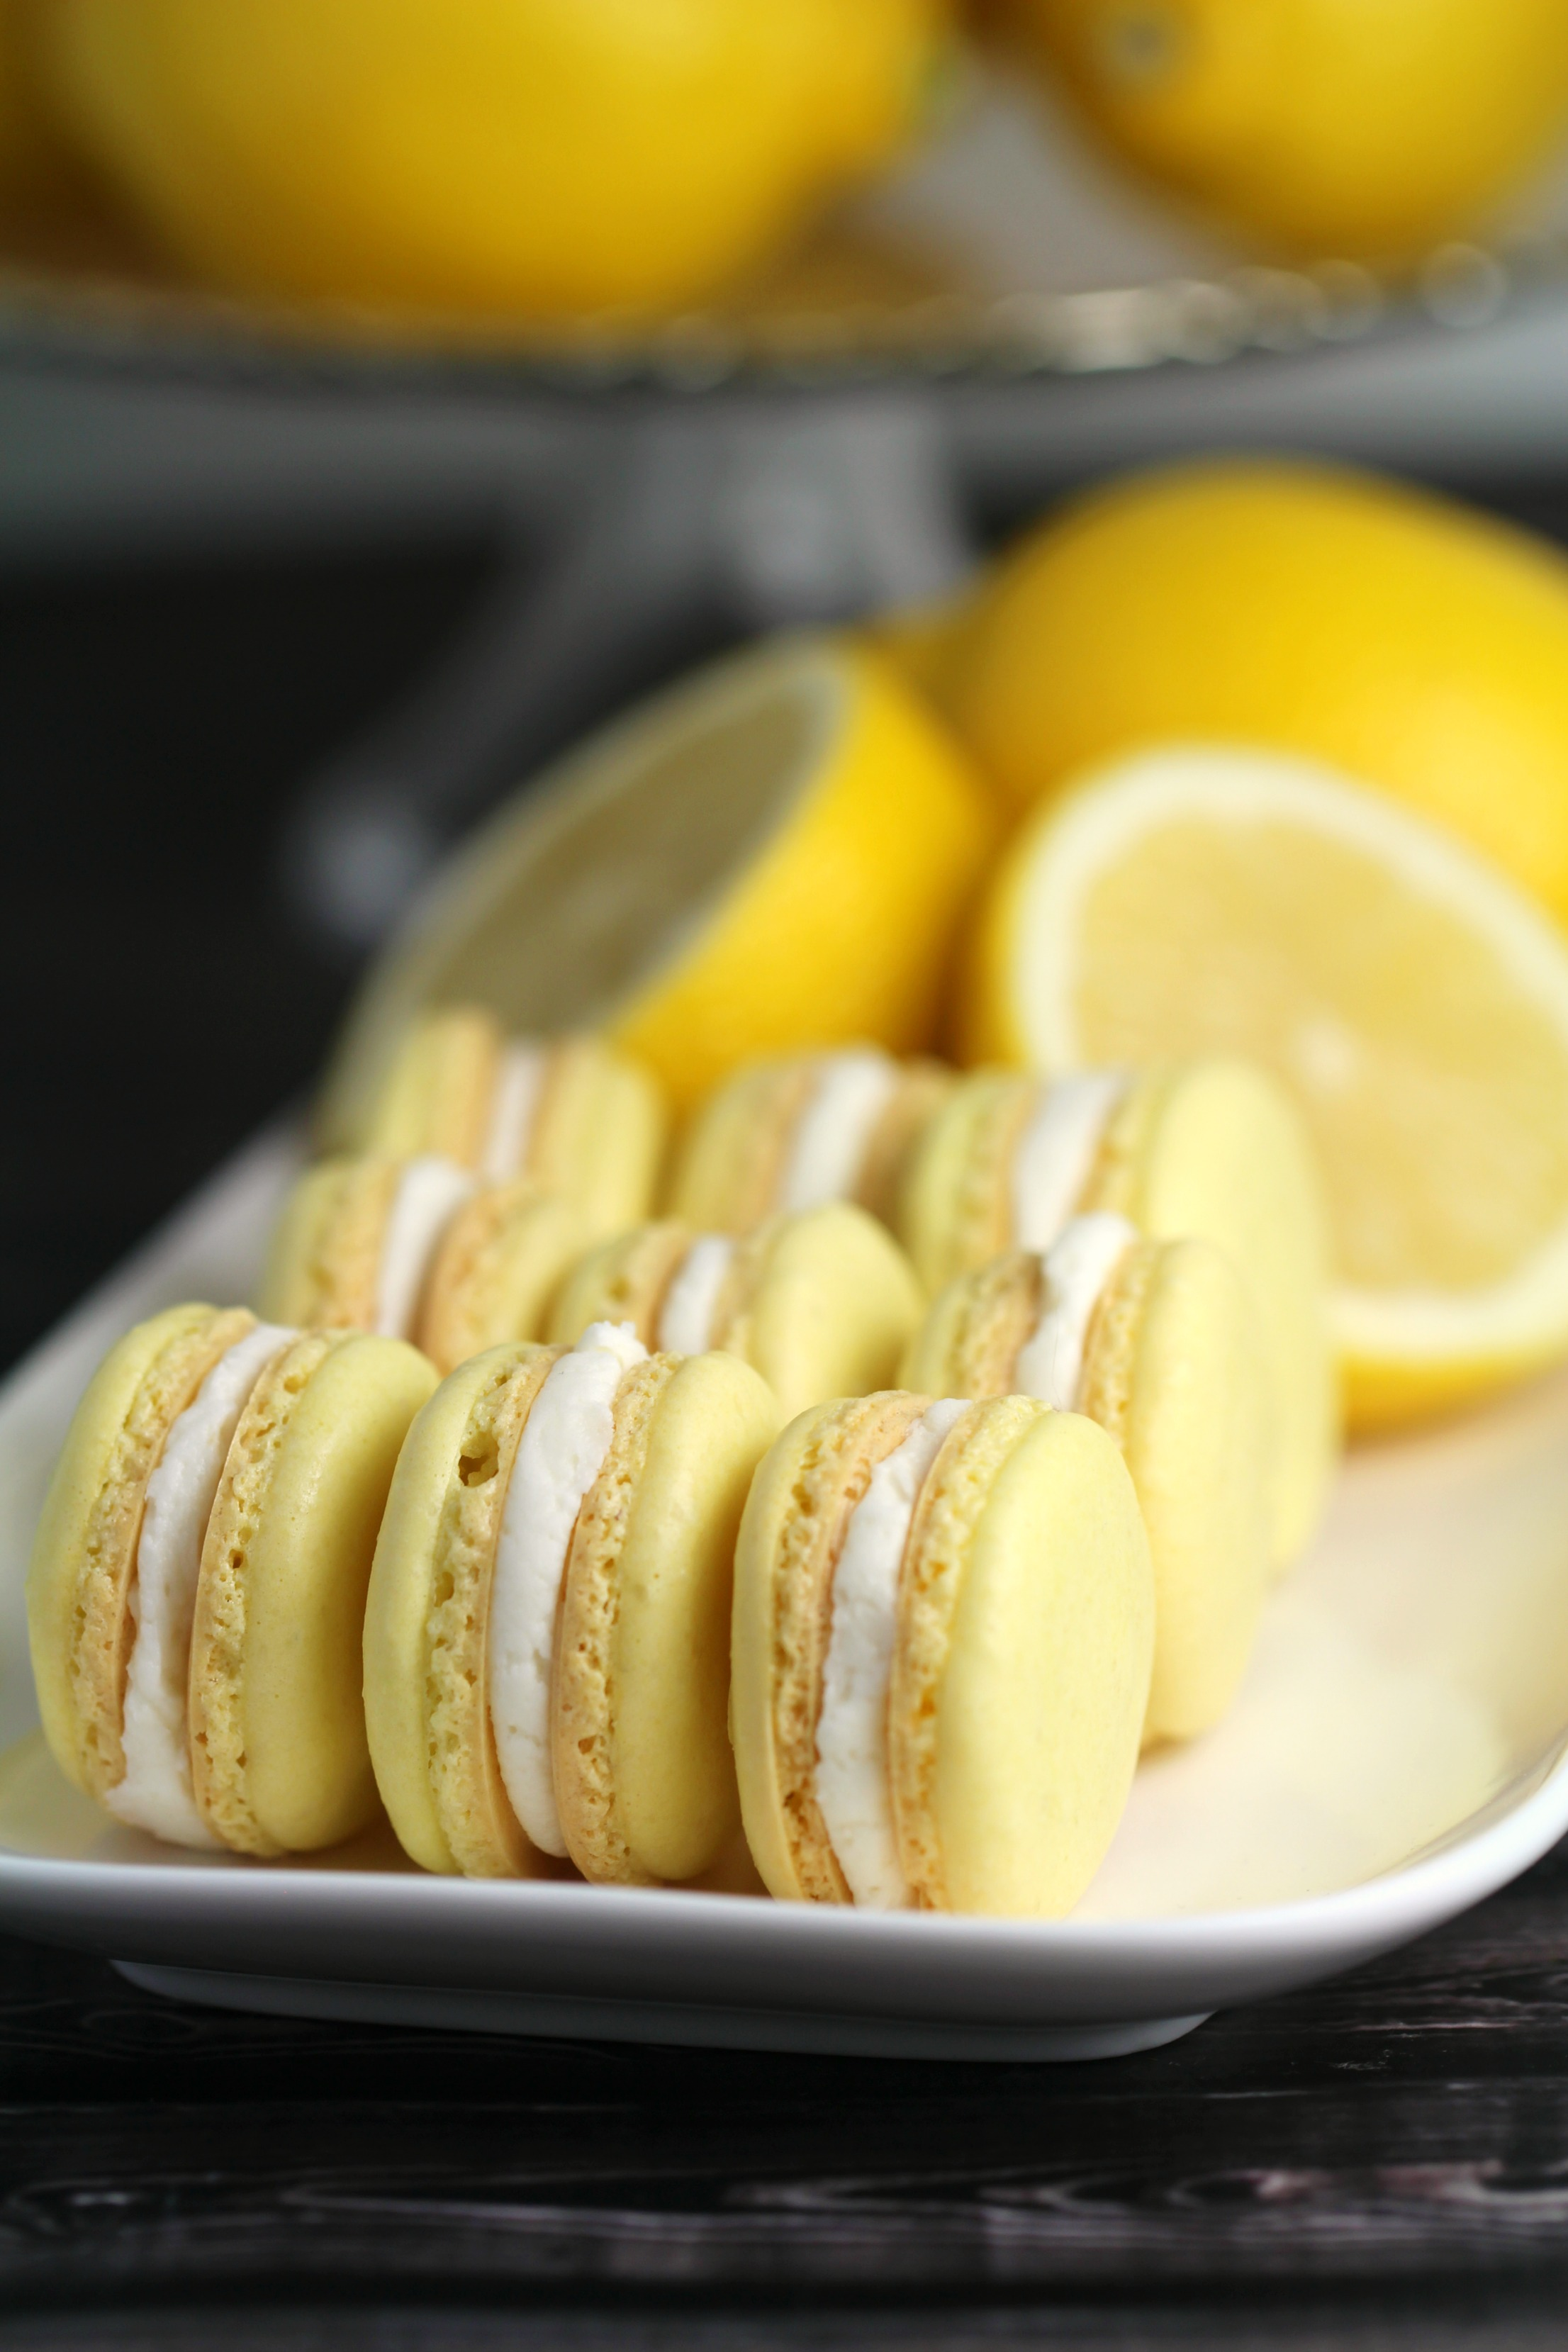 This Lemon Macaron Recipe is will help you learn how to make macarons for beginners with easy and detailed instructions for the best macarons!